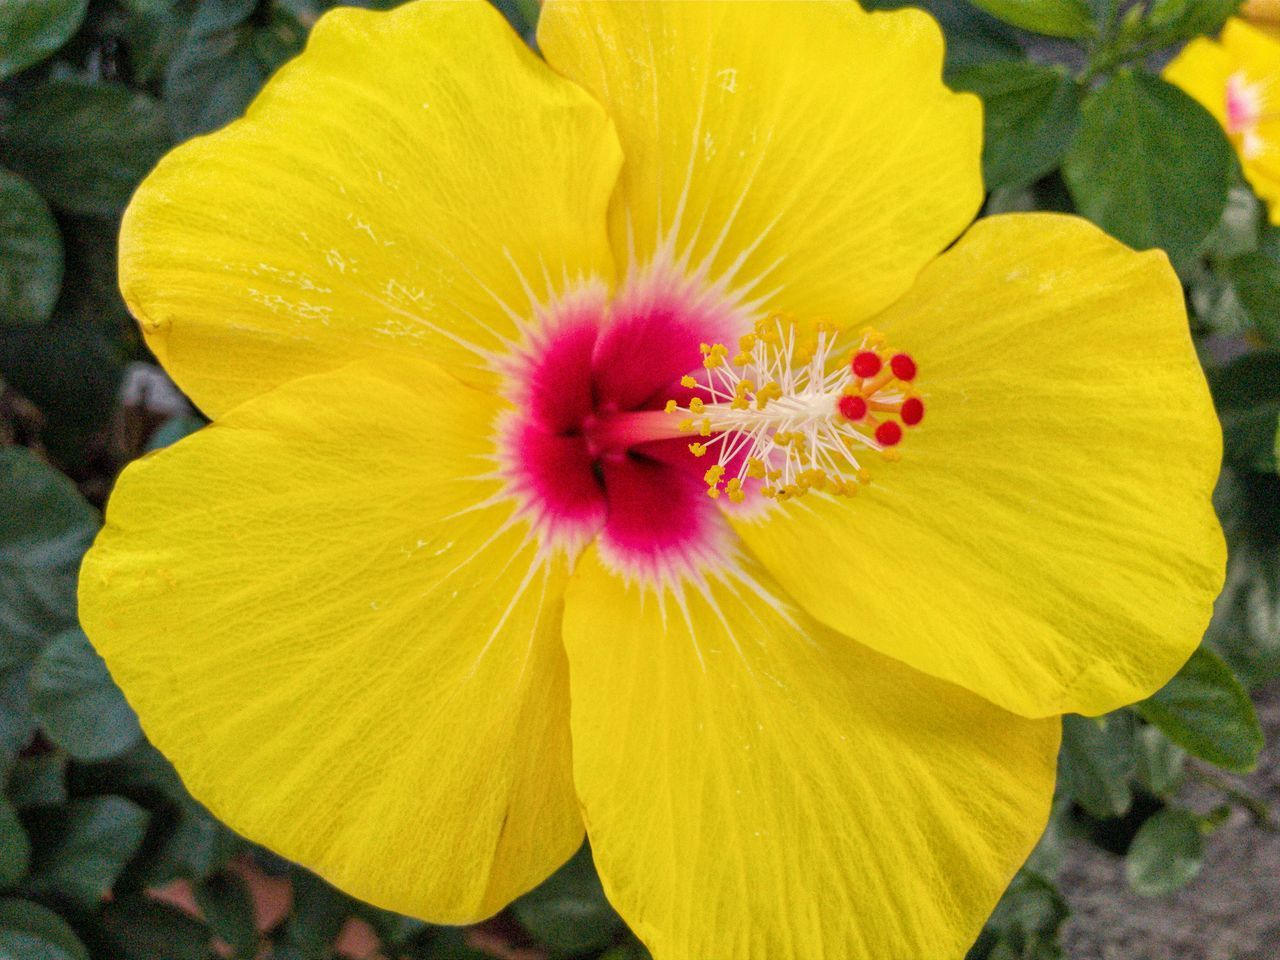 flowering plant, flower, flower head, freshness, yellow, petal, beauty in nature, plant, inflorescence, fragility, vulnerability, growth, close-up, pollen, nature, day, stamen, no people, focus on foreground, outdoors